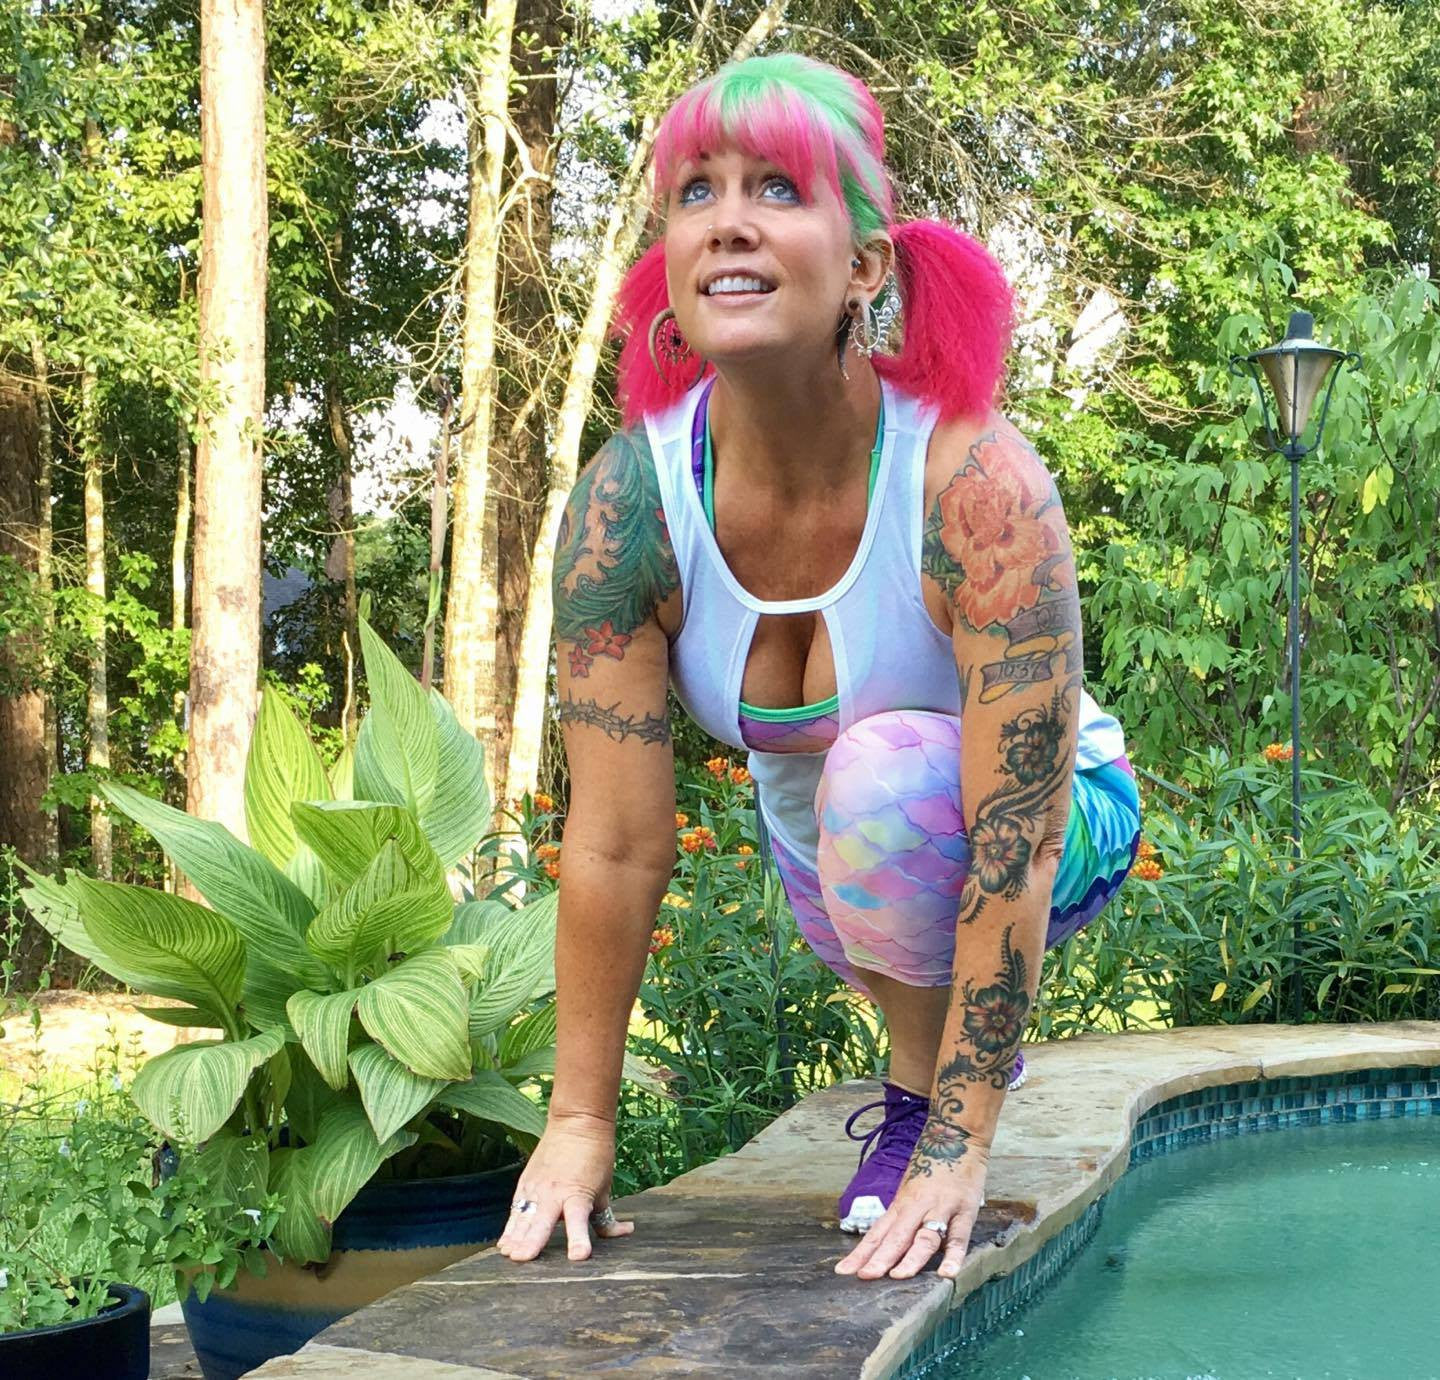 Kelli's Fitness Selfies - Prismatic Dream and Gymnasty Sessions!